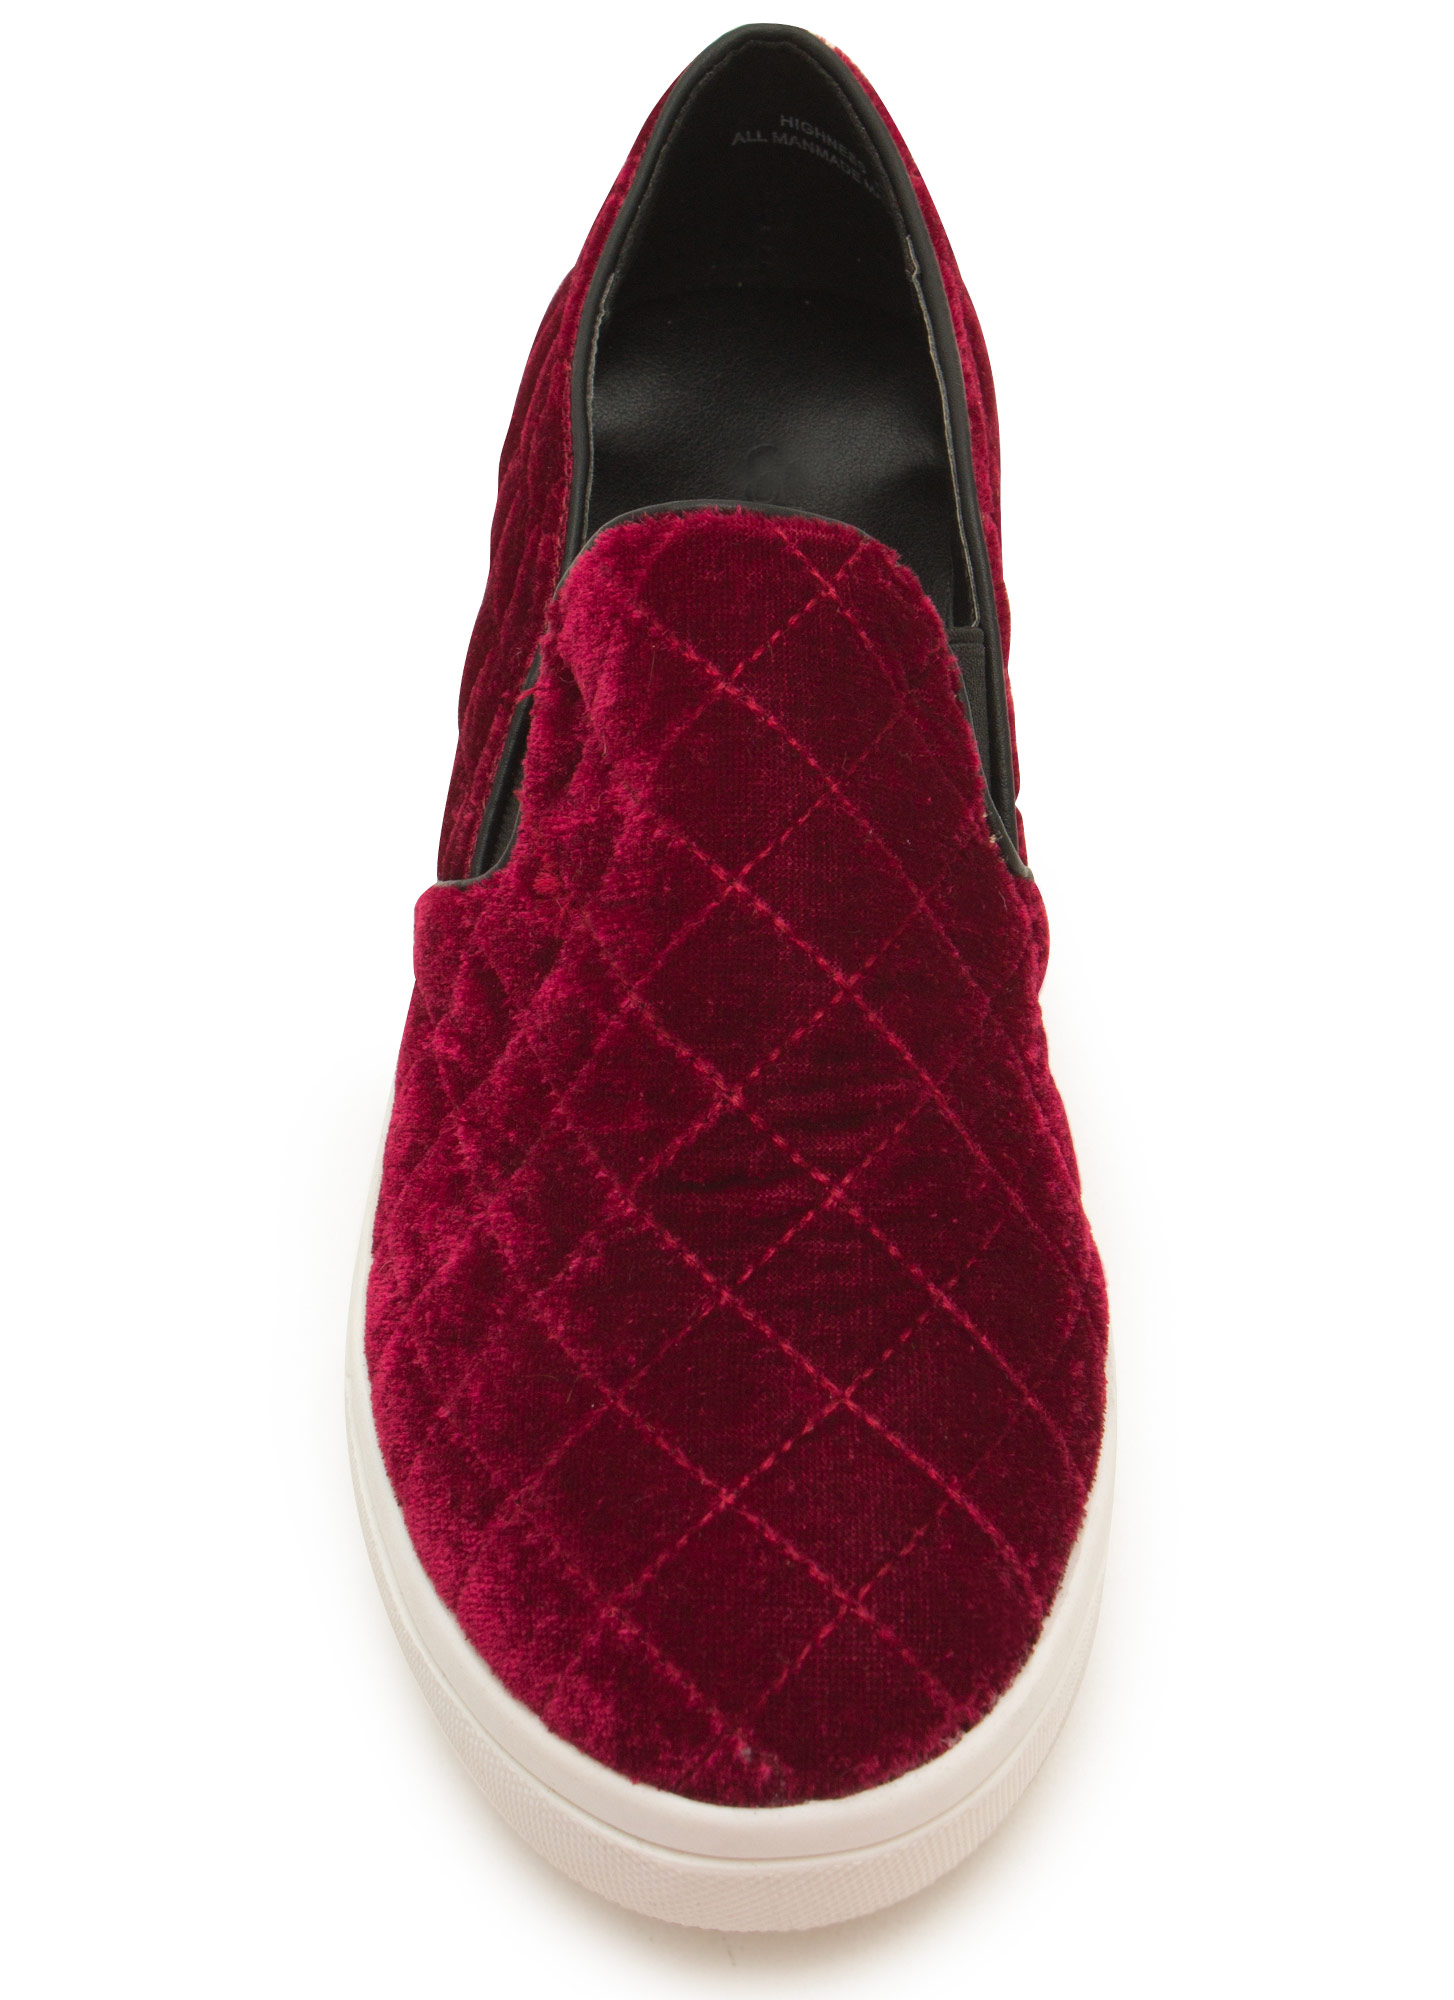 Quilt Trip Velvety Slip-On Sneakers OXBLOOD